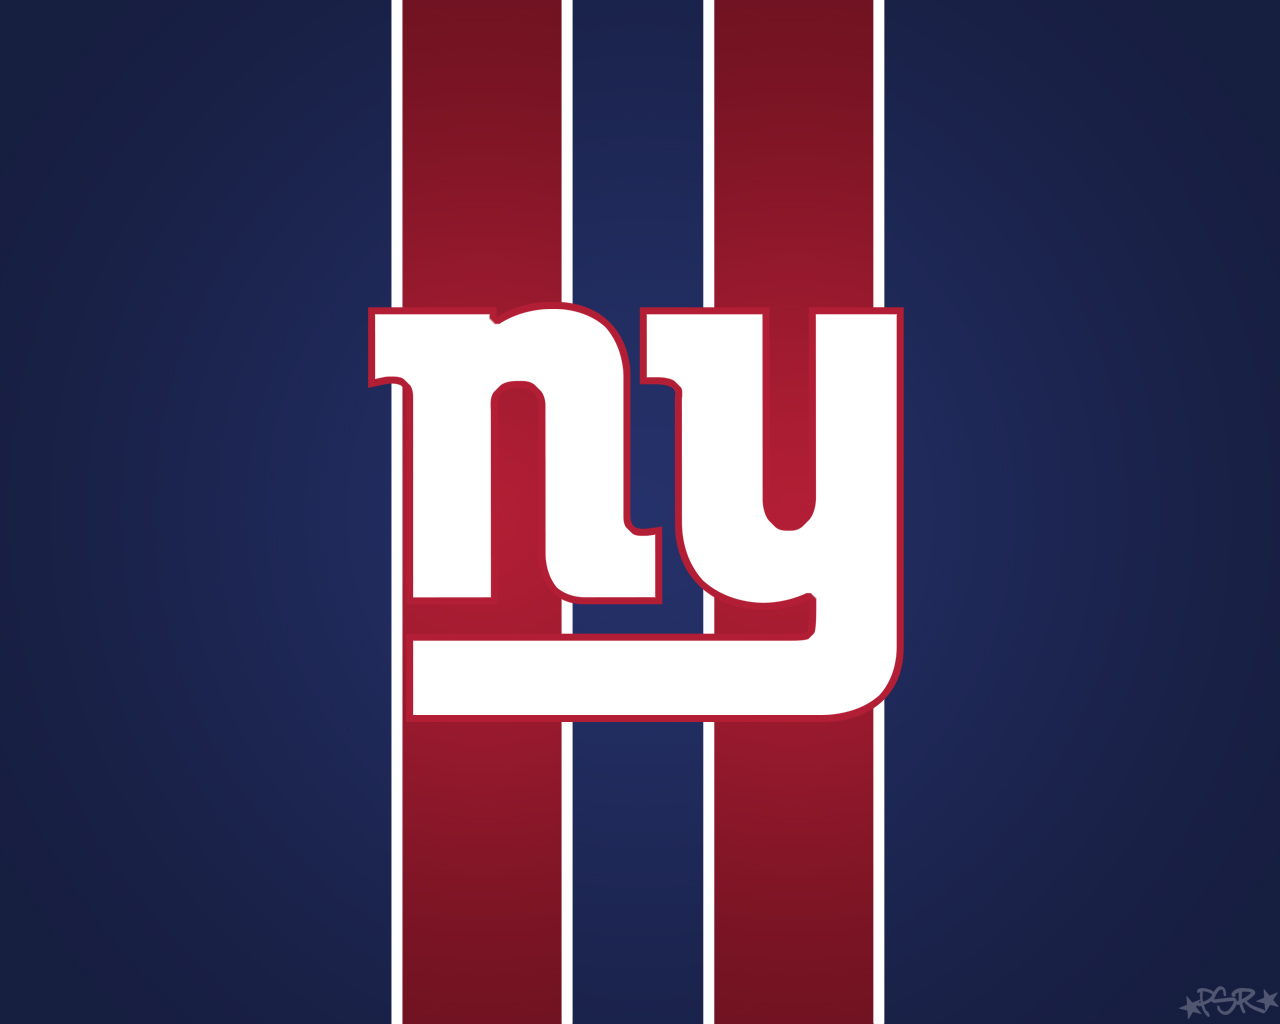 New York Giants Wallpaper Collection | Sports Geekery